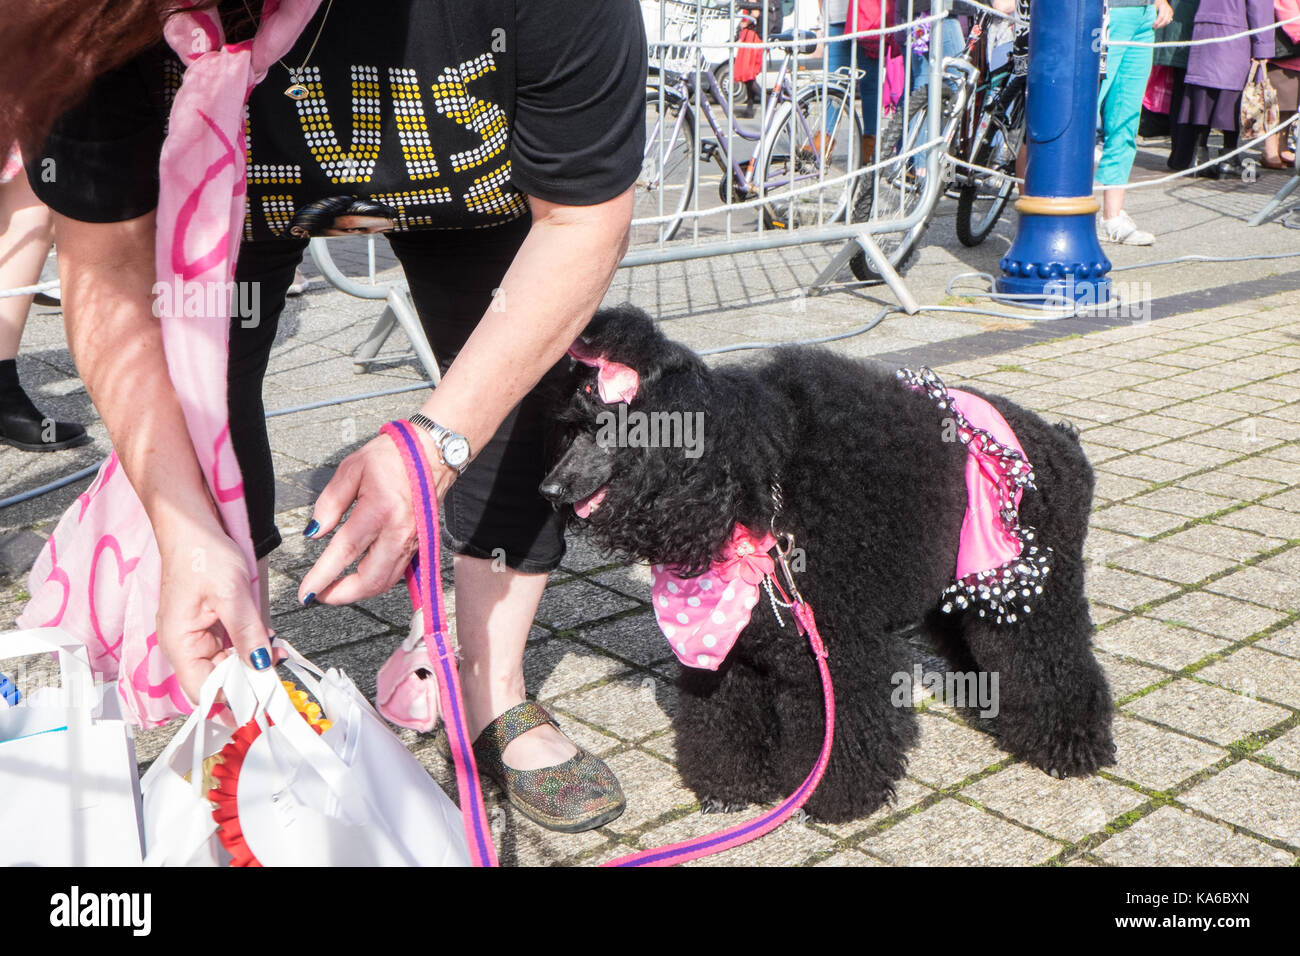 At,Elvis,Festival,Elvis Festival,Porthcawl,Bridgend,county,South,Wales,UK,U.K.,Europe, Stock Photo